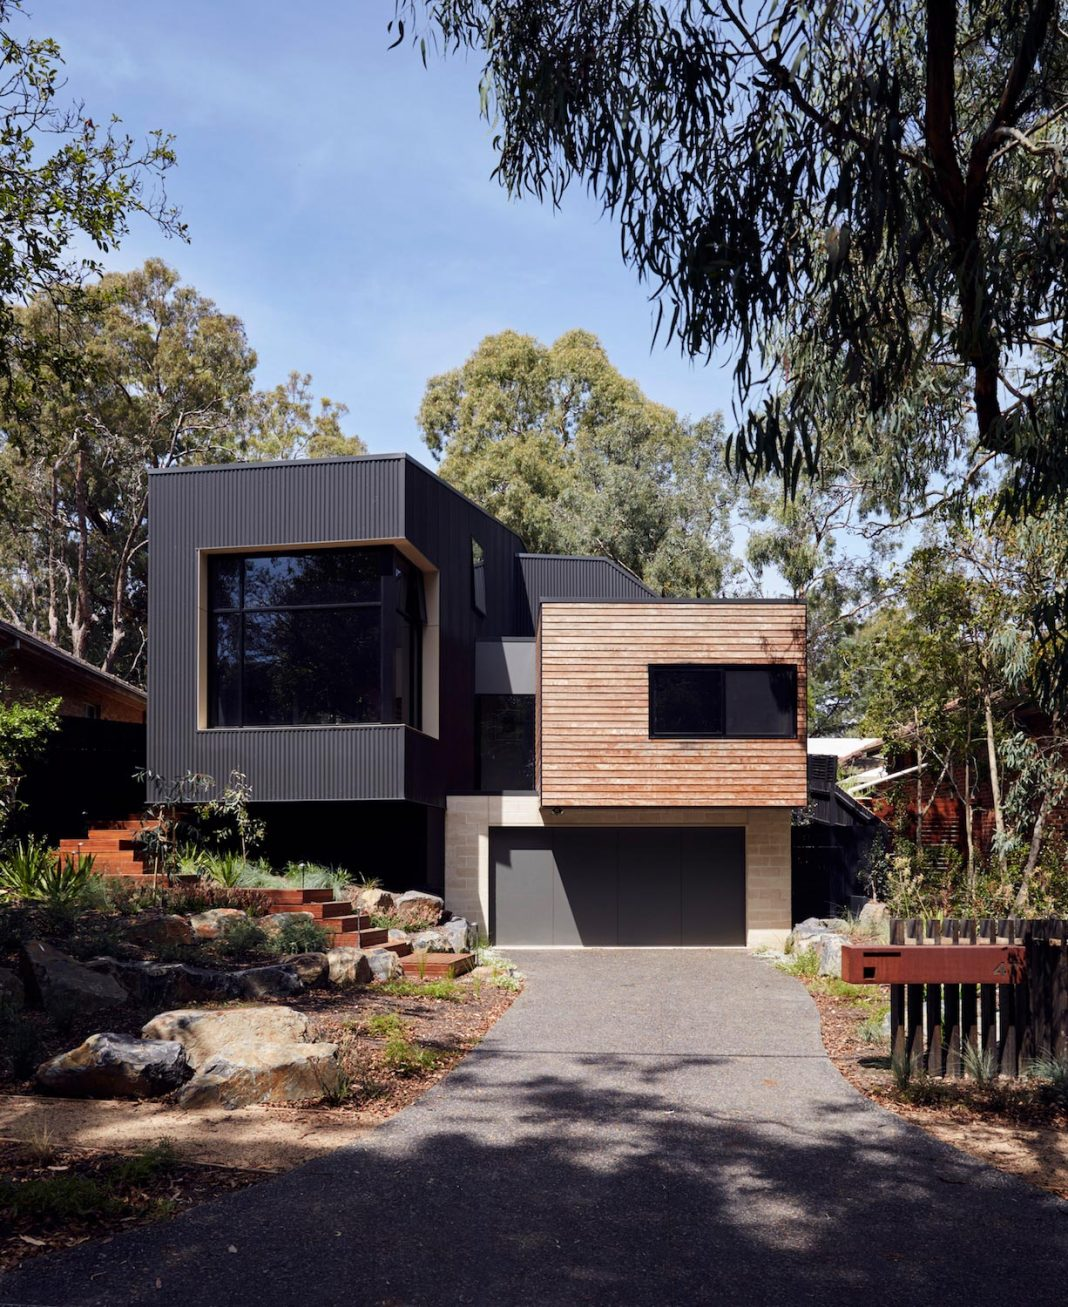 Blackburn modular family home nestled amongst the gums and for Blackburn home